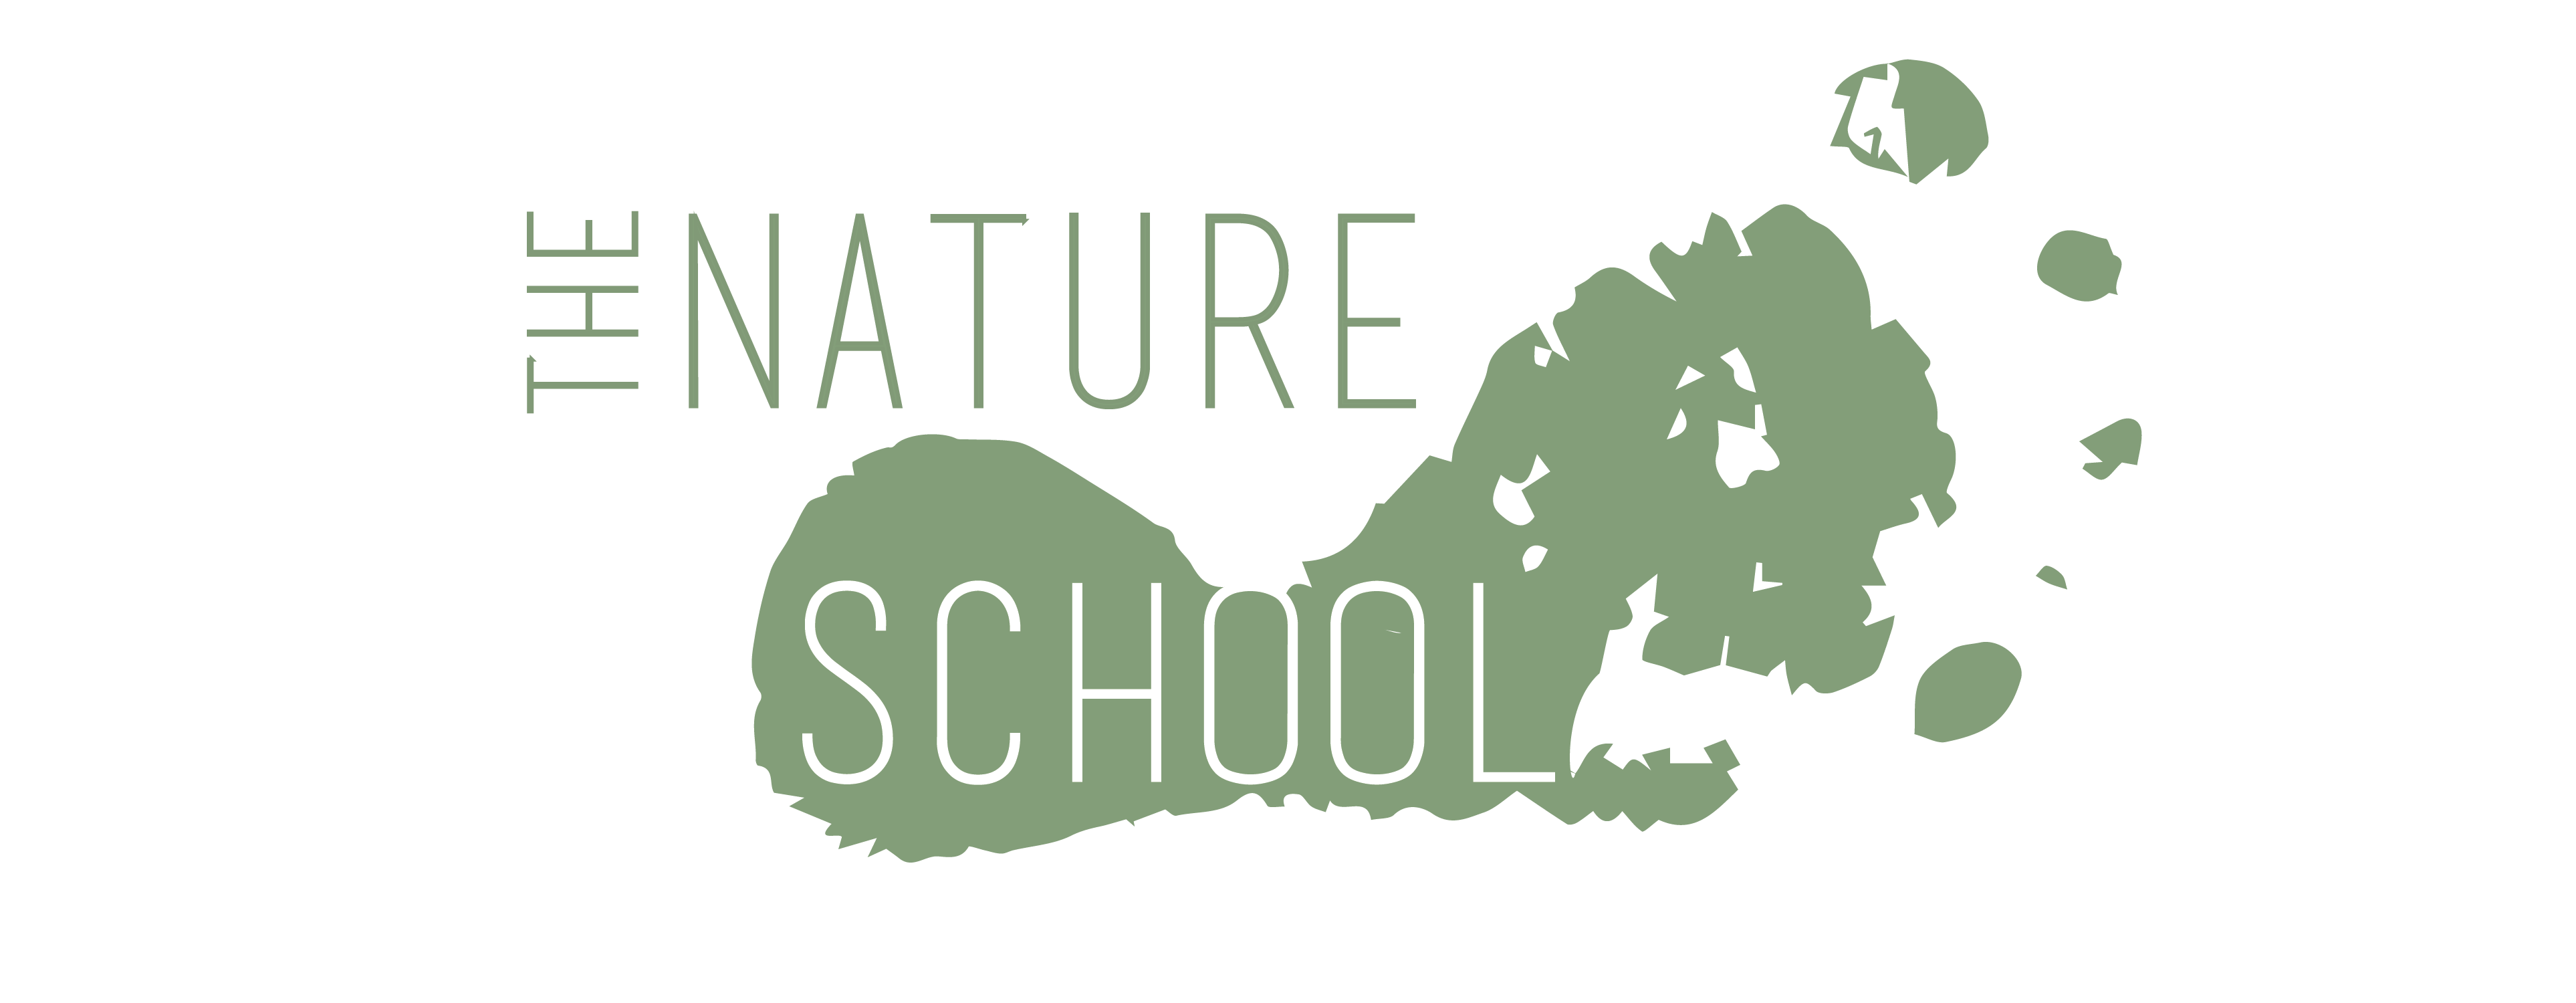 The nature School white background